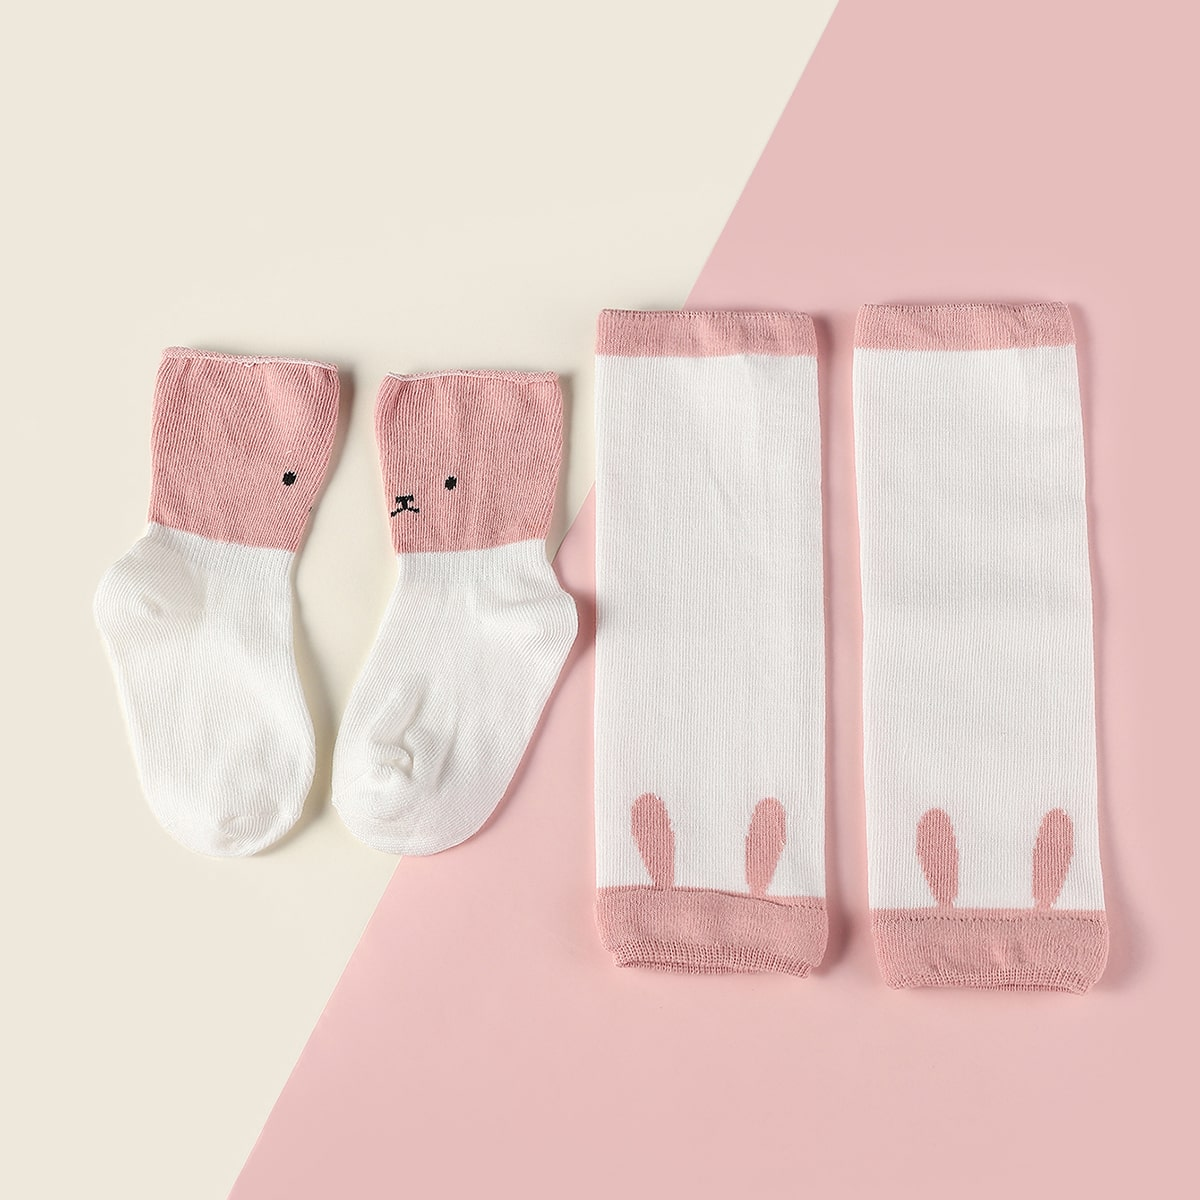 1pair Baby Socks & 1pair Leg Warmers